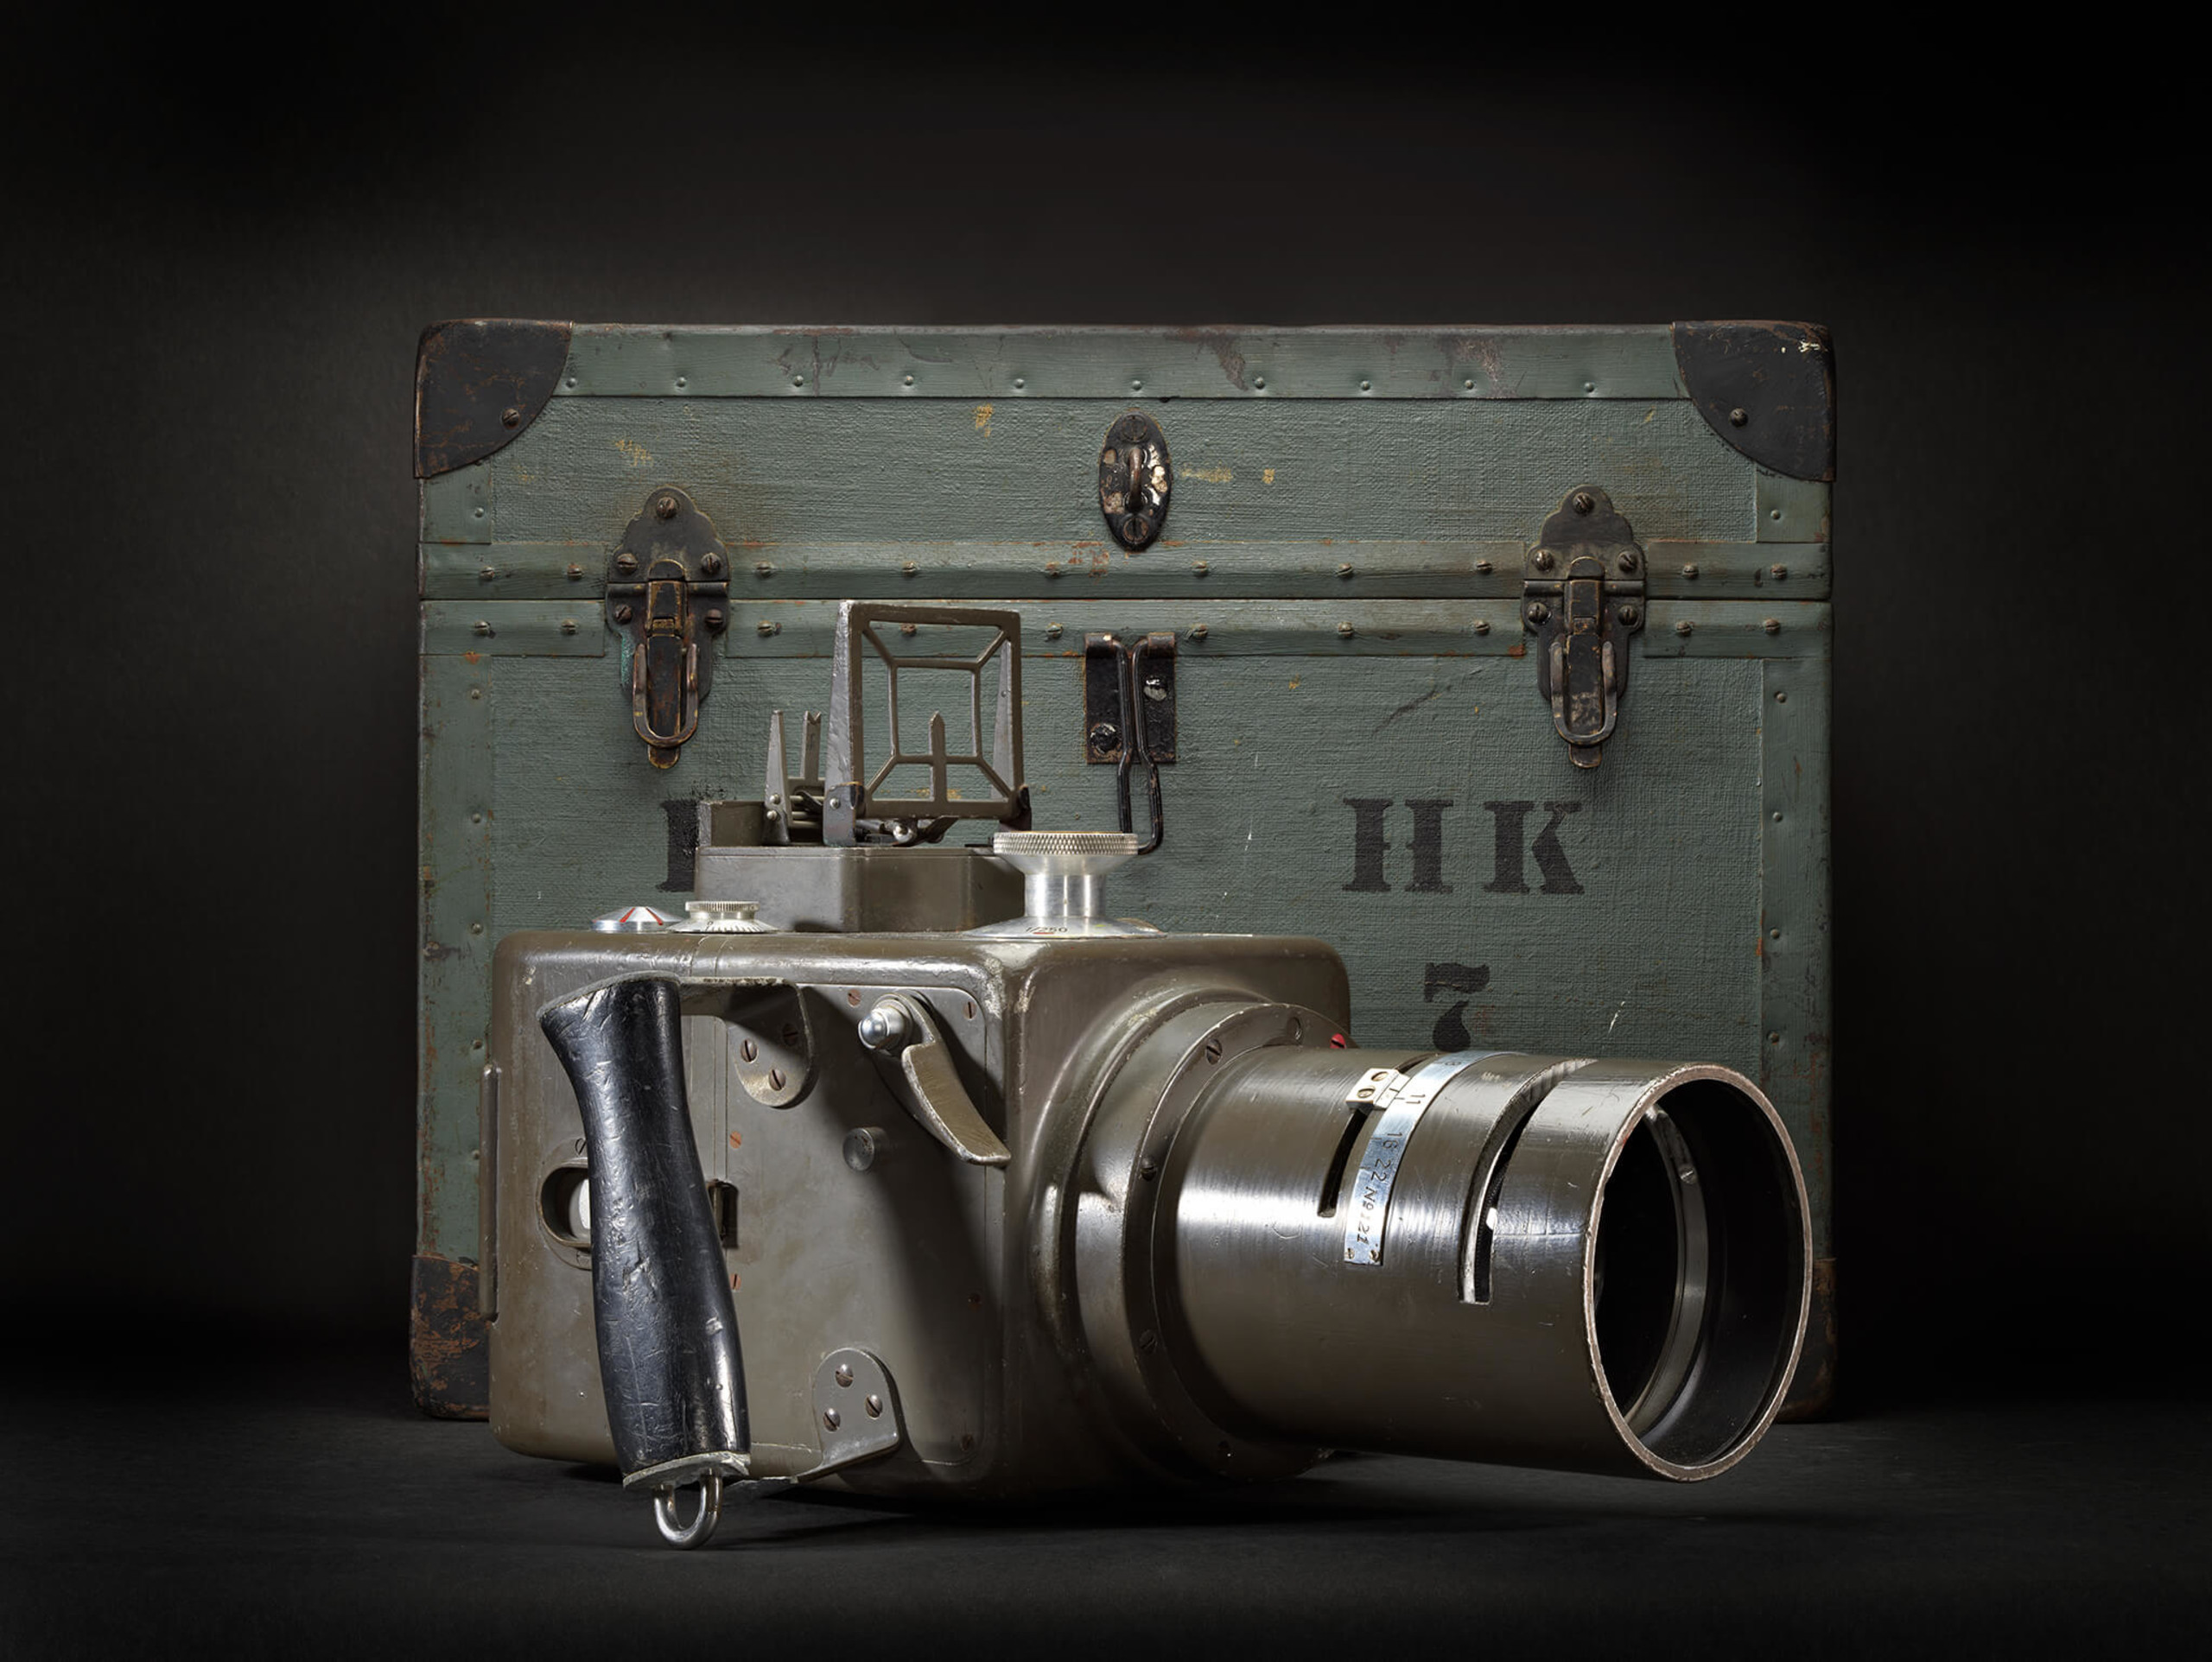 Preserving Hasselblad History with the H6D-400c MS